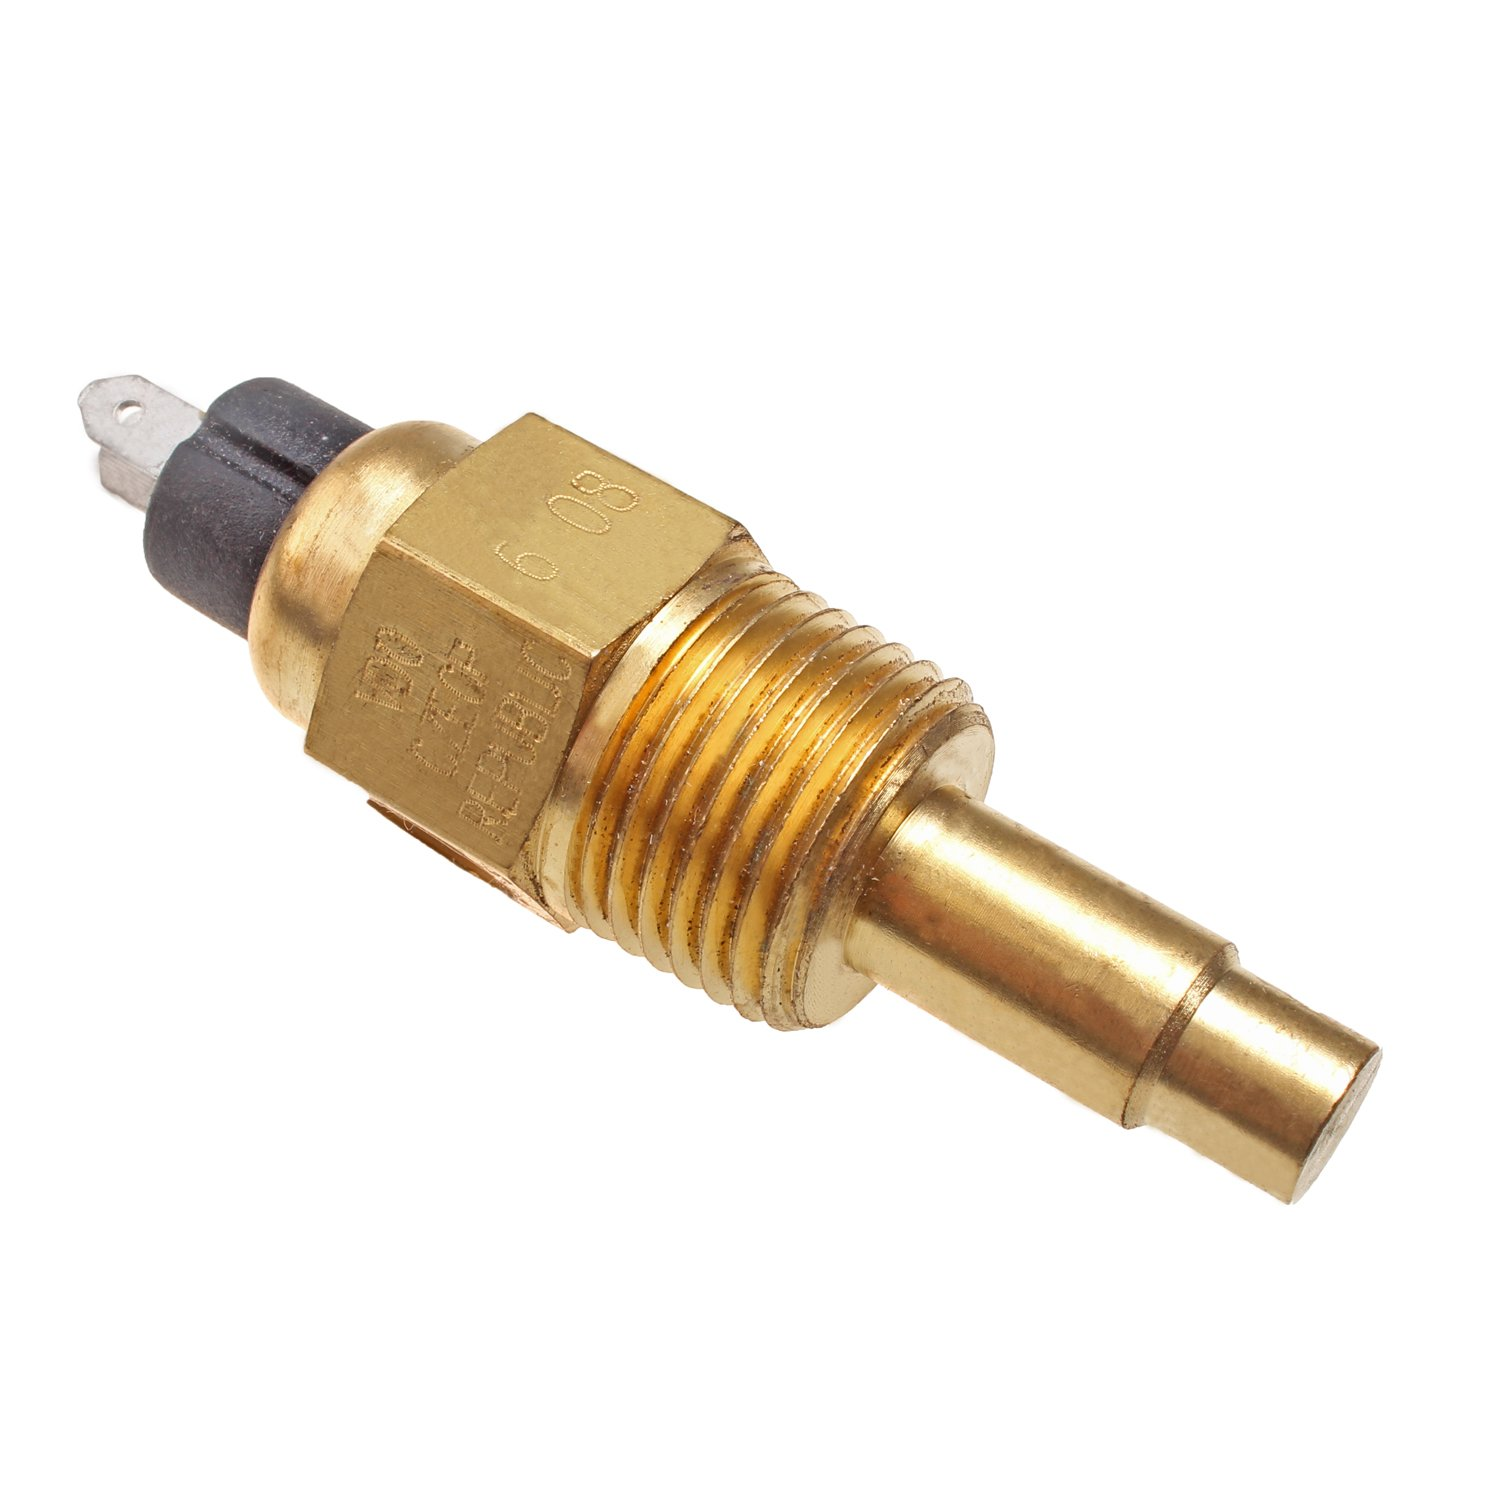 Mover Parts Water Temperature Sensor 622-817 Alarm Switch 1//2NPT 103/°C For FG Wilson Genset